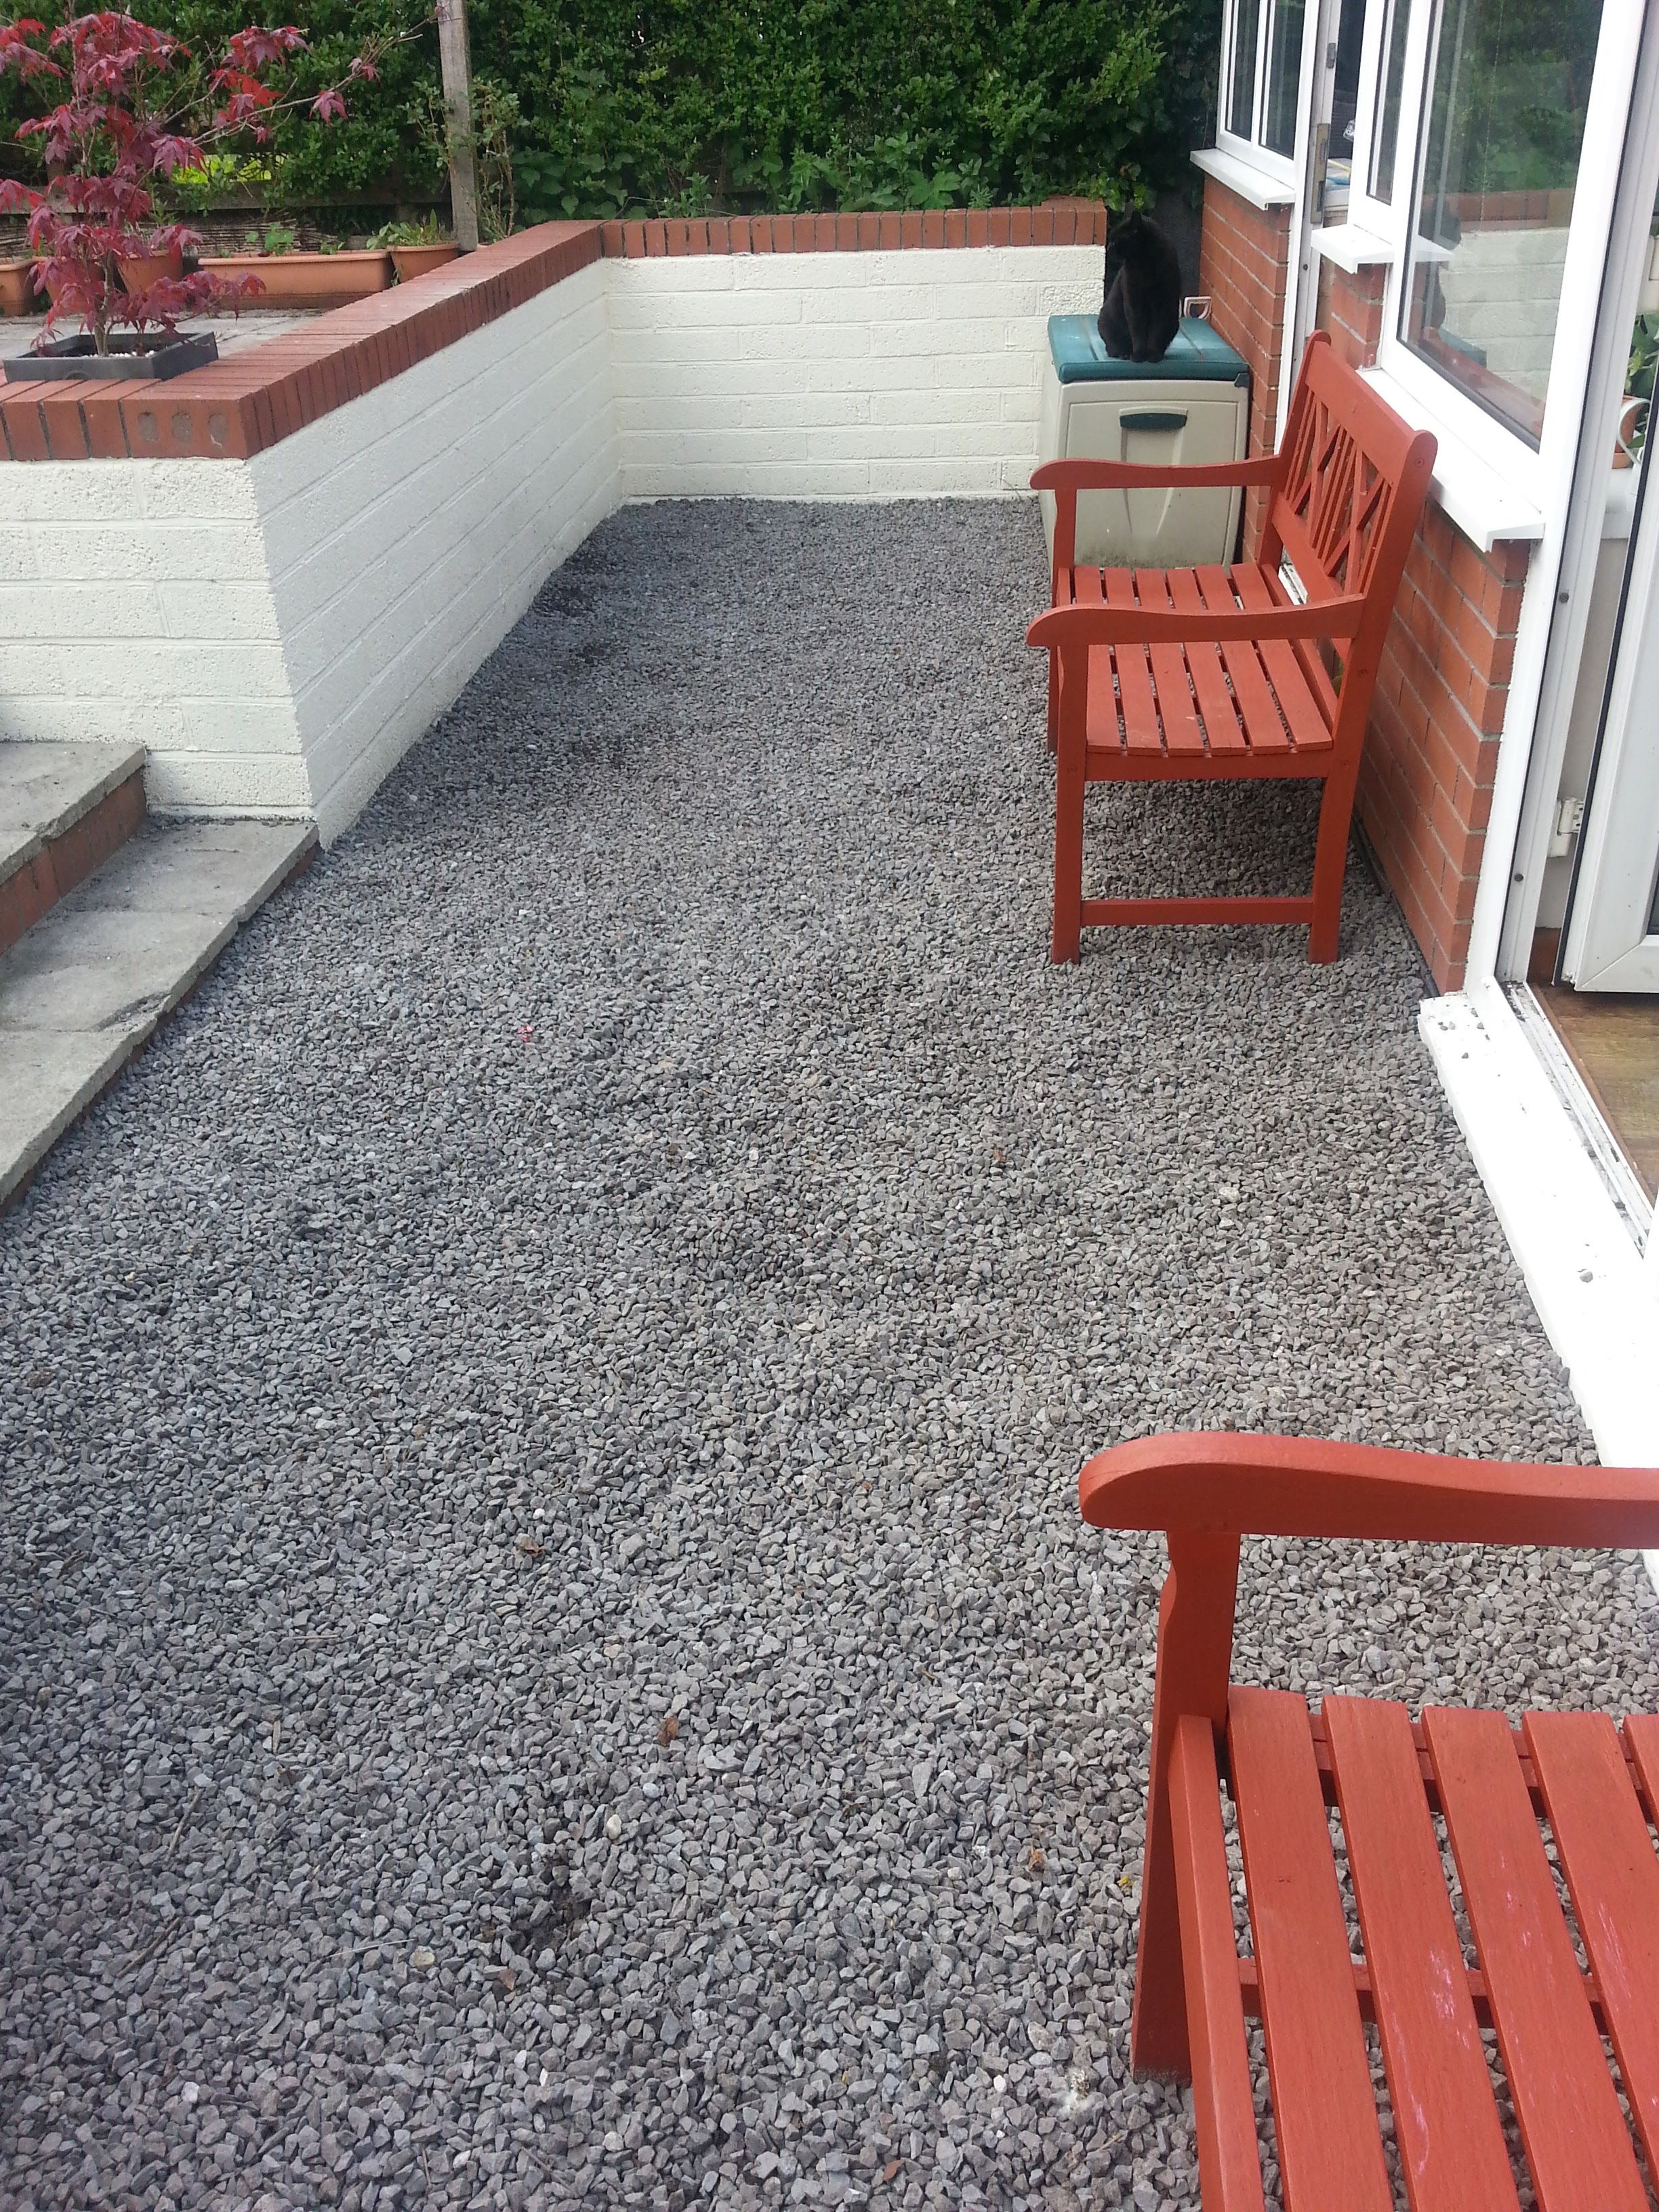 Blue Stone Chippings To Cover Ugly Uneven Patio